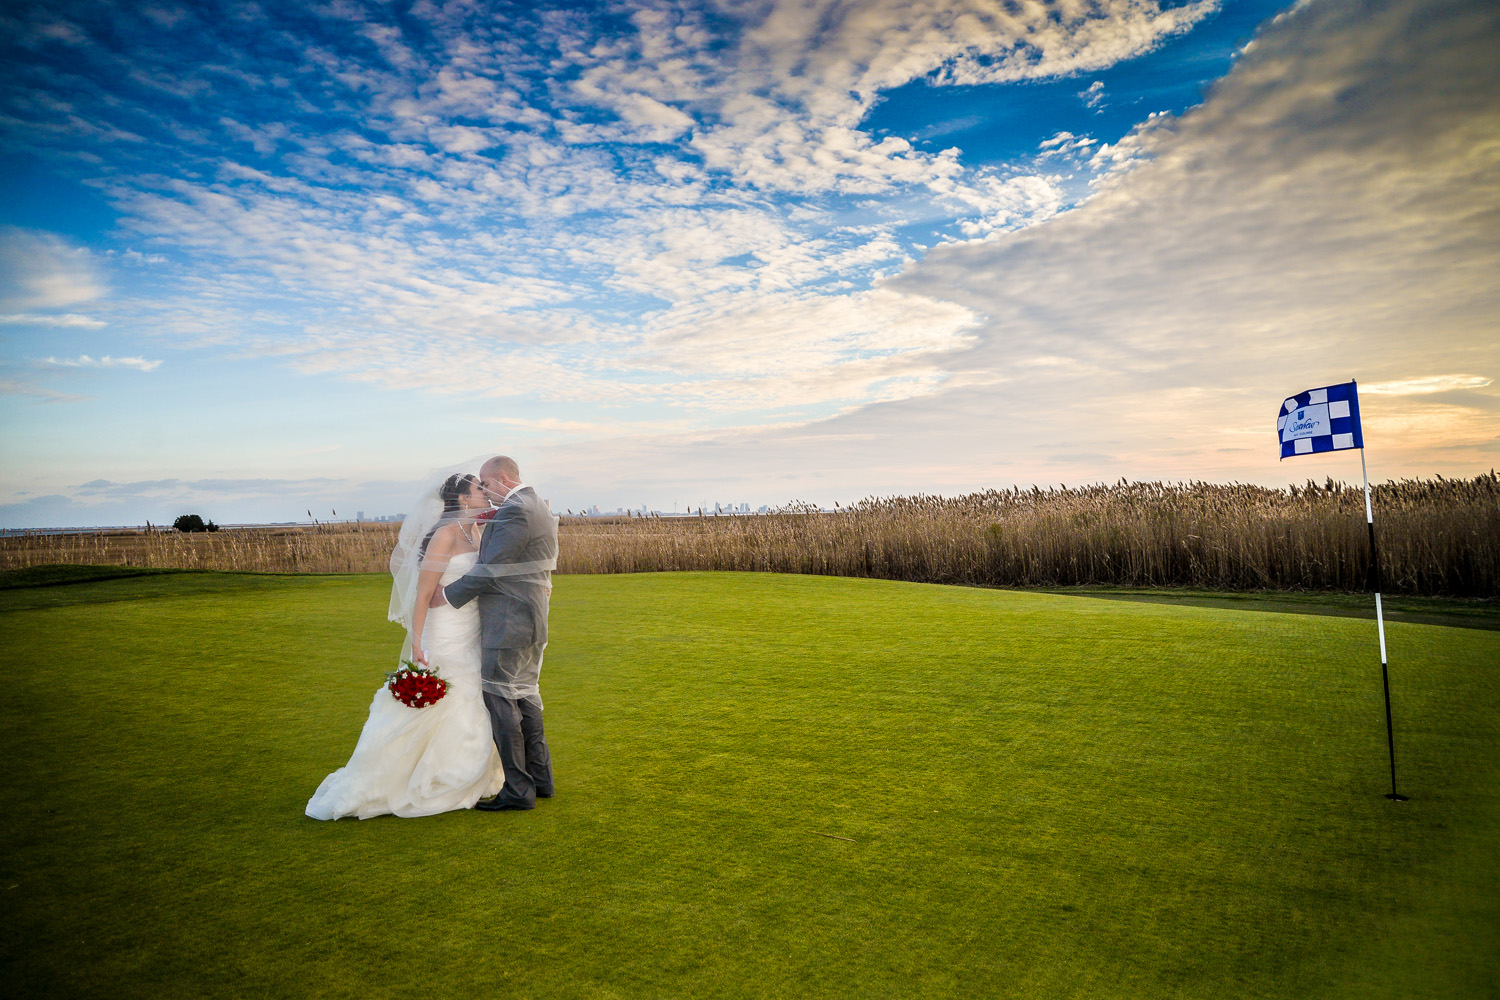 bridal couple at Seaview resort Galloway, New Jersey / Meyer Photography